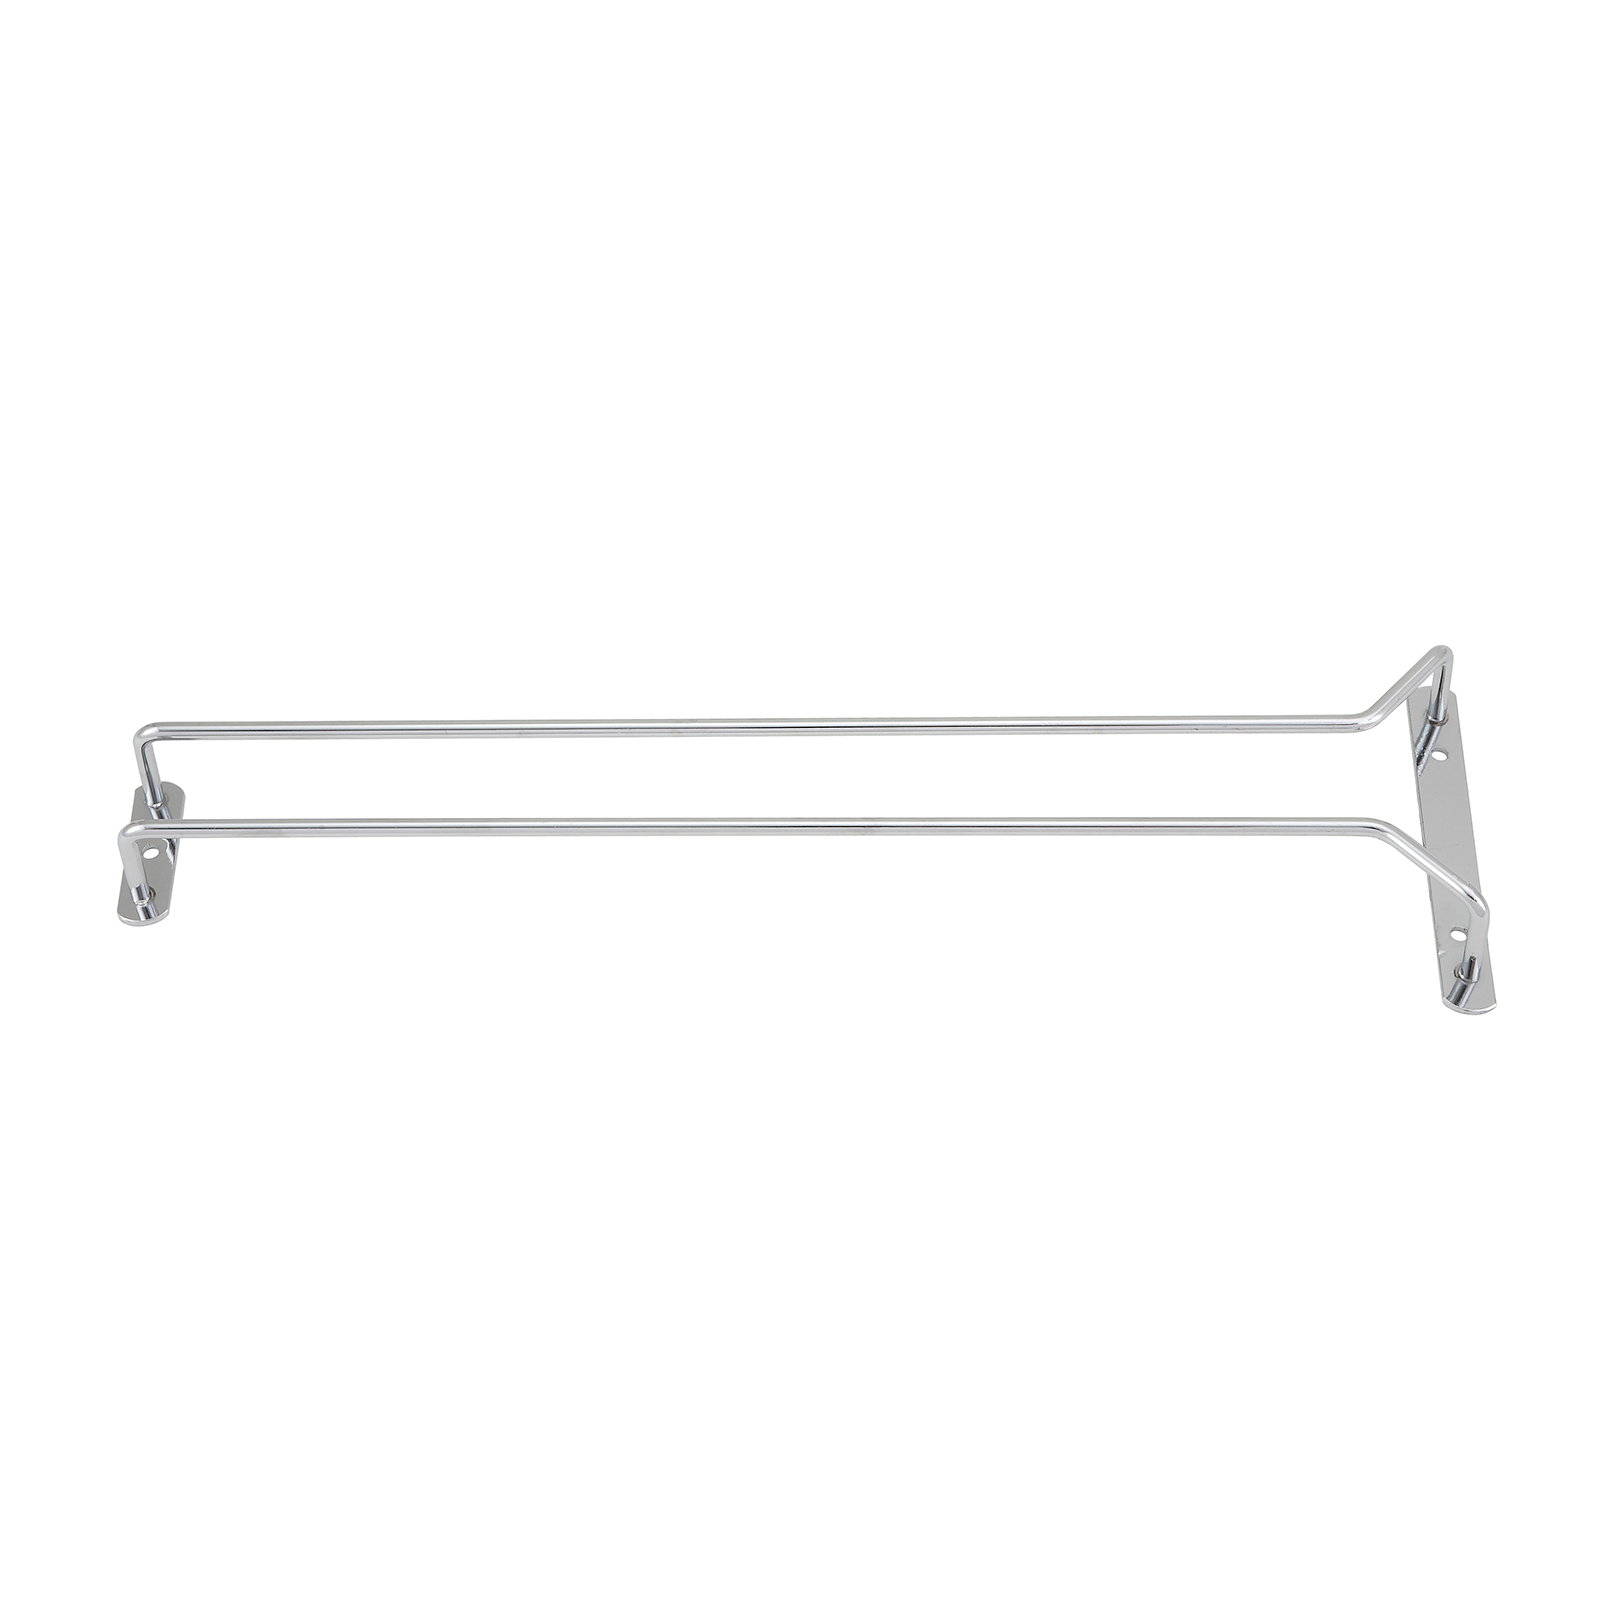 Winco GHC-16 glass rack, hanging